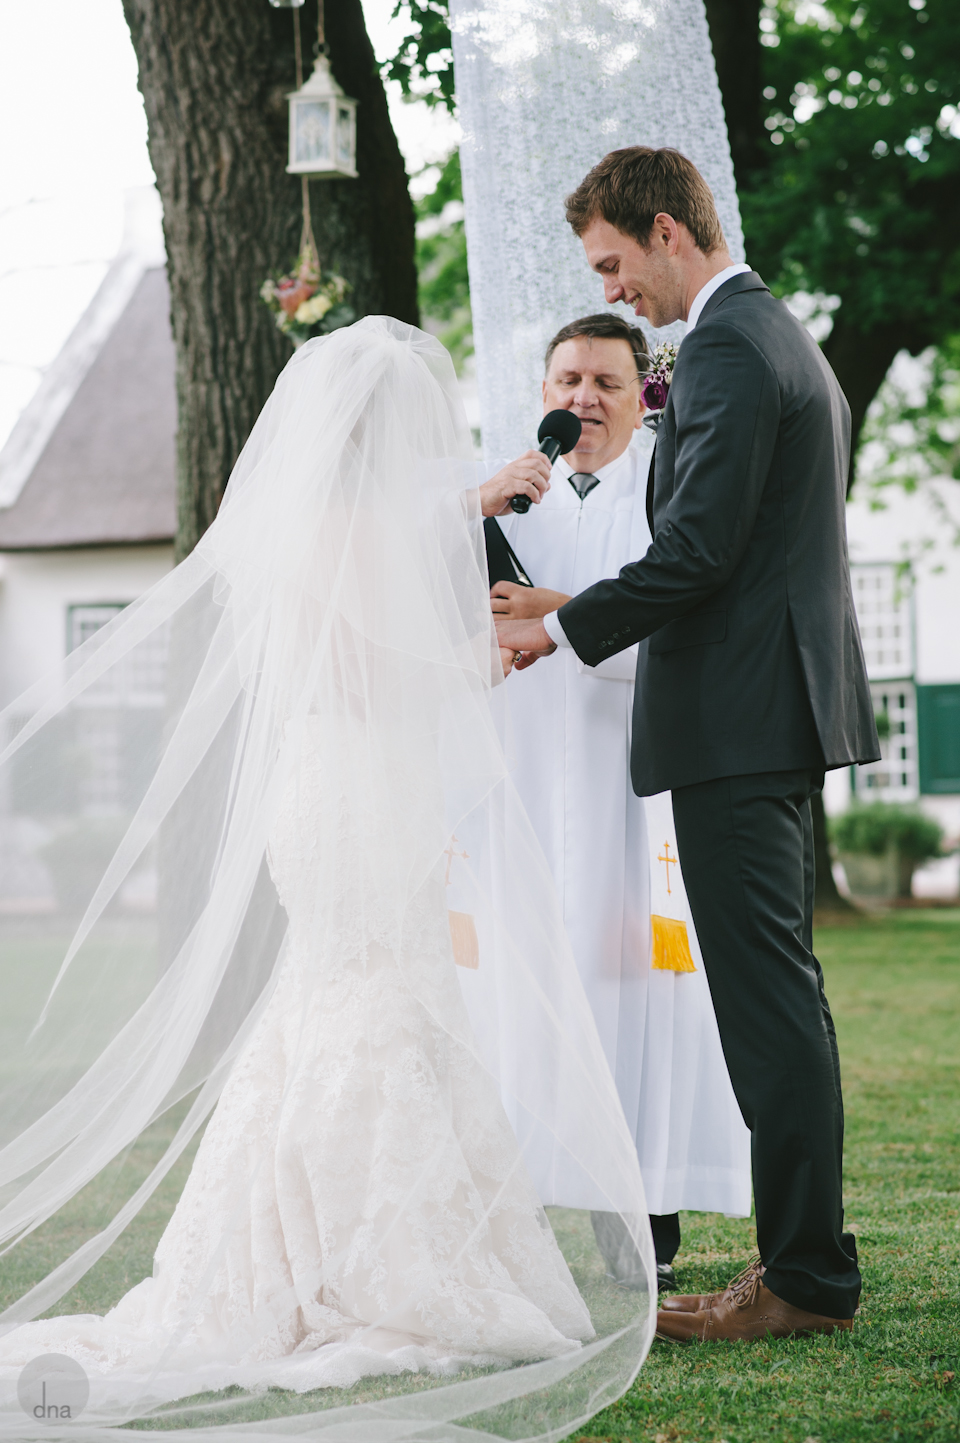 Amy and Marnus wedding Hawksmore House Stellenbosch South Africa shot by dna photographers_-541.jpg